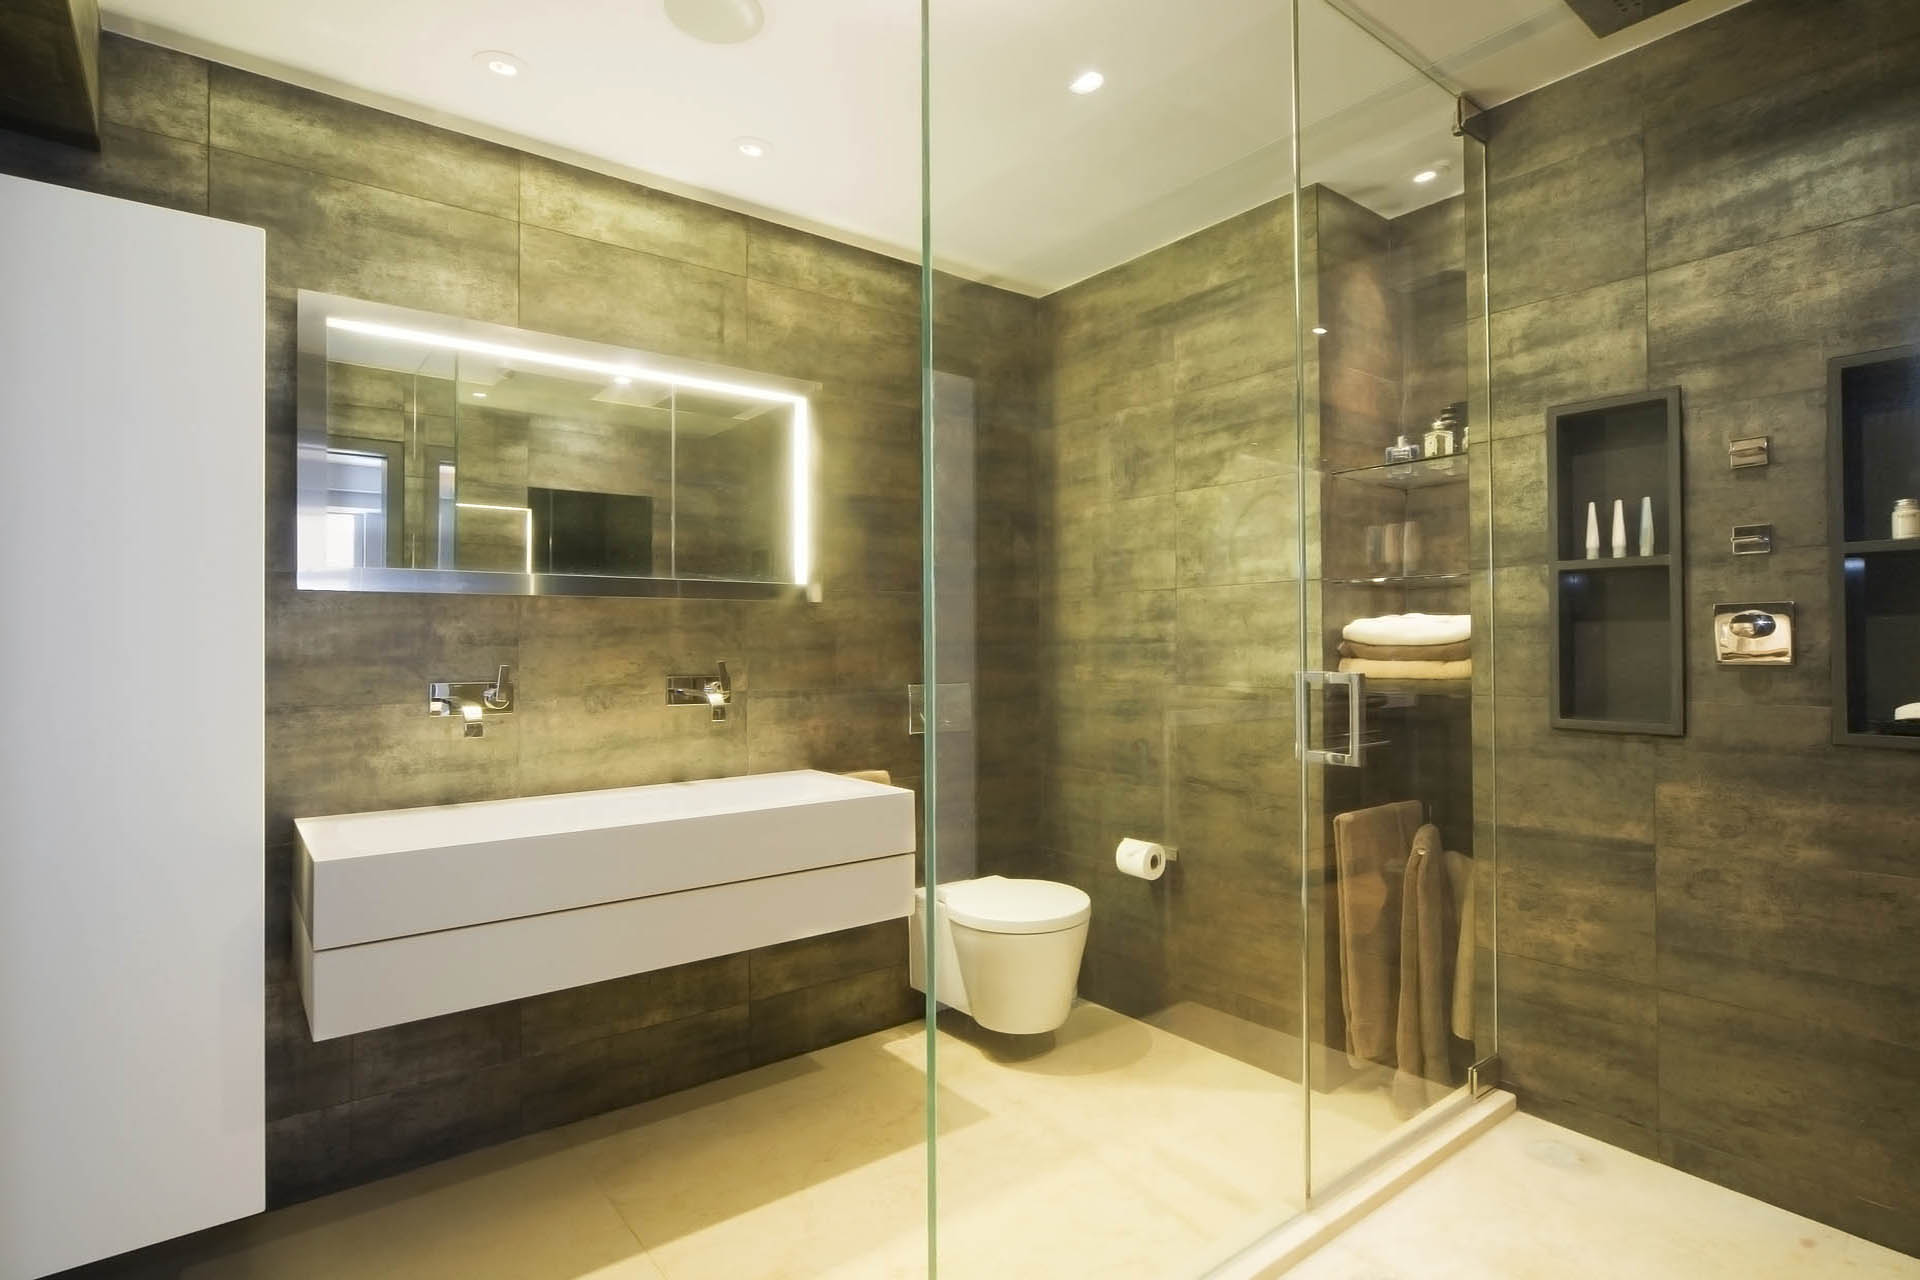 Bathroom at West 24th Street - Element Design Group NYC